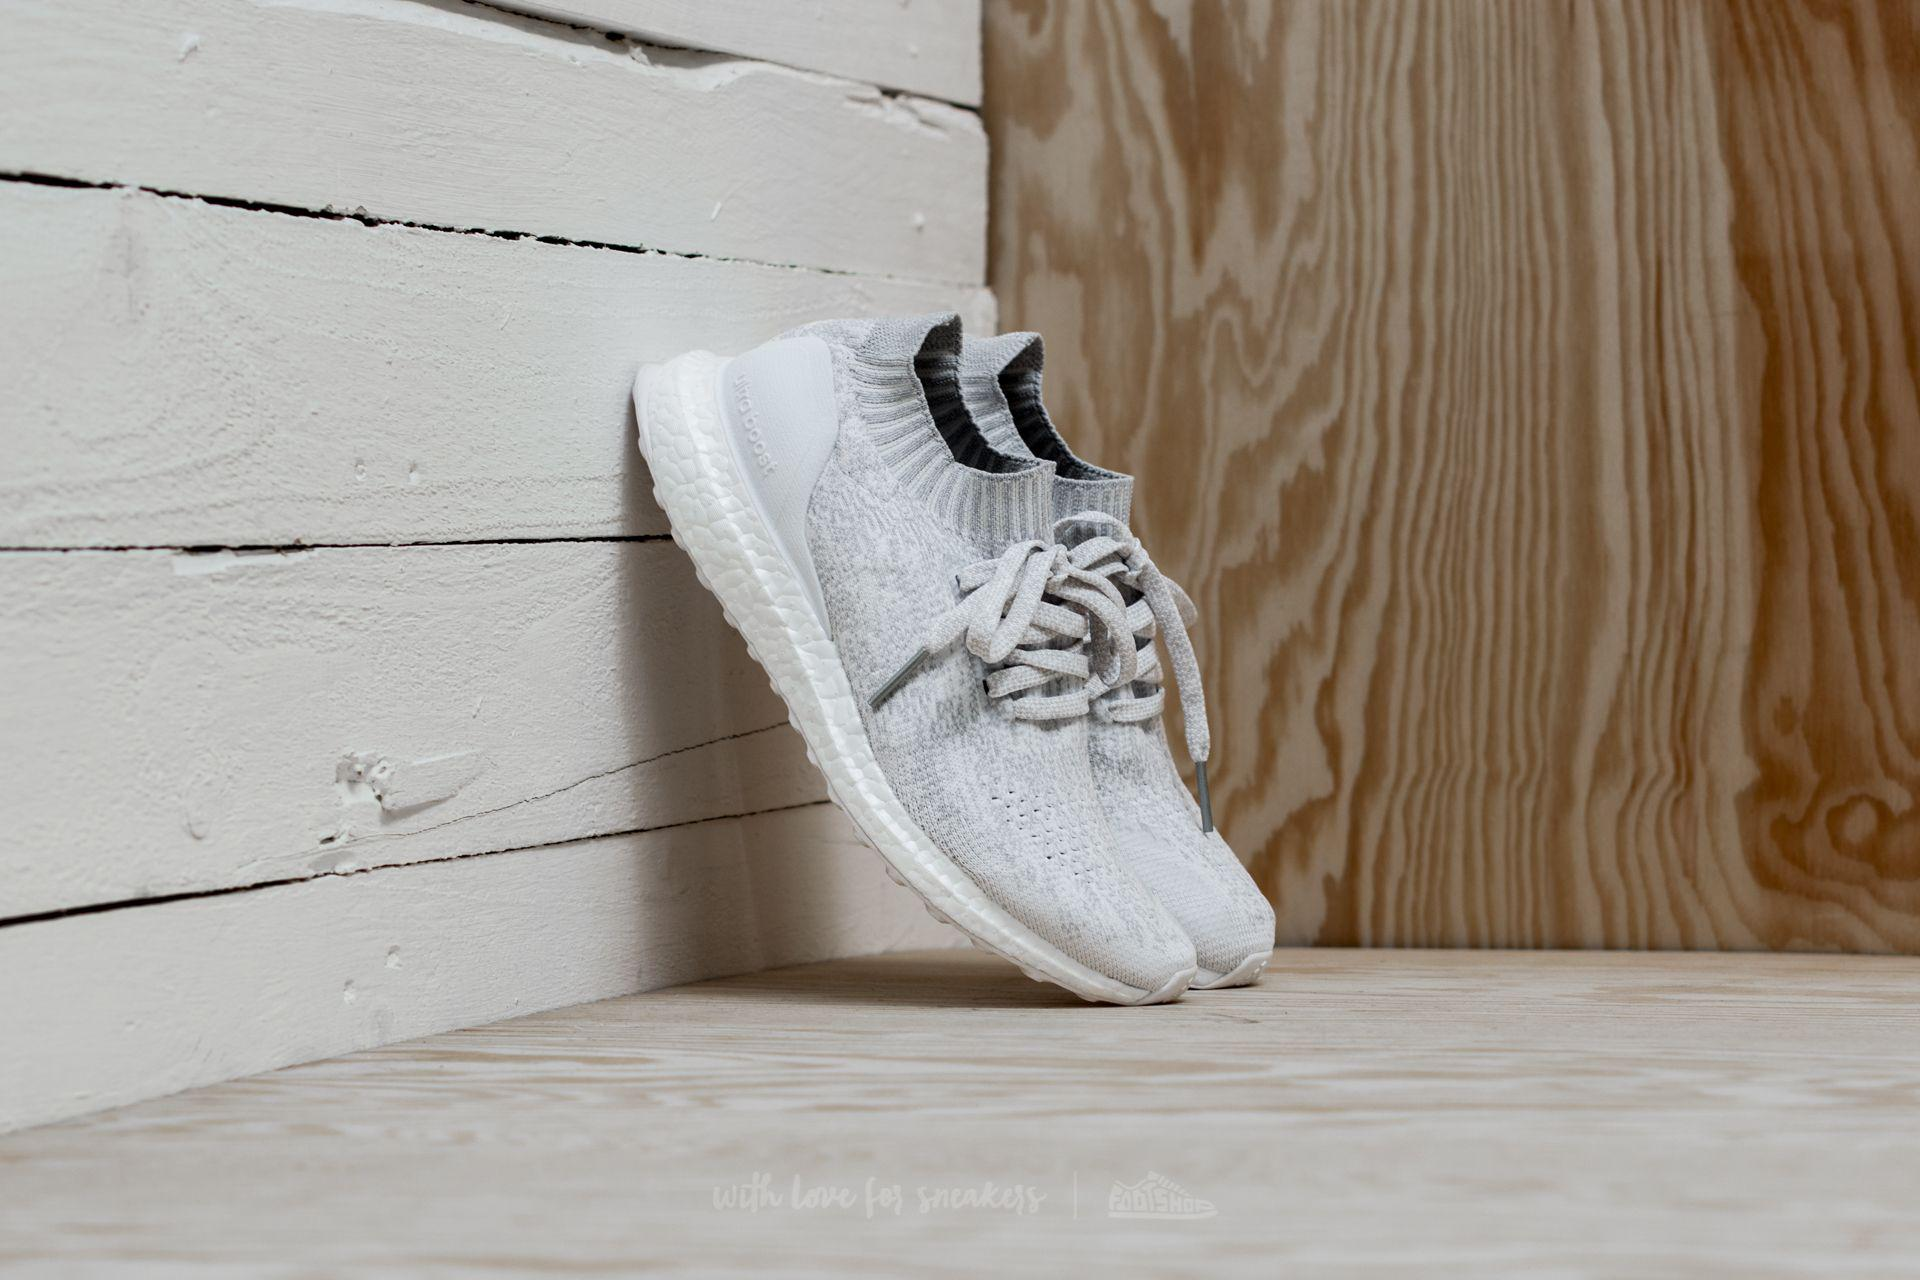 competitive price 1cabf 67221 Lyst - Adidas Originals Adidas Ultraboost Uncaged J Ftw White  Ftw ...